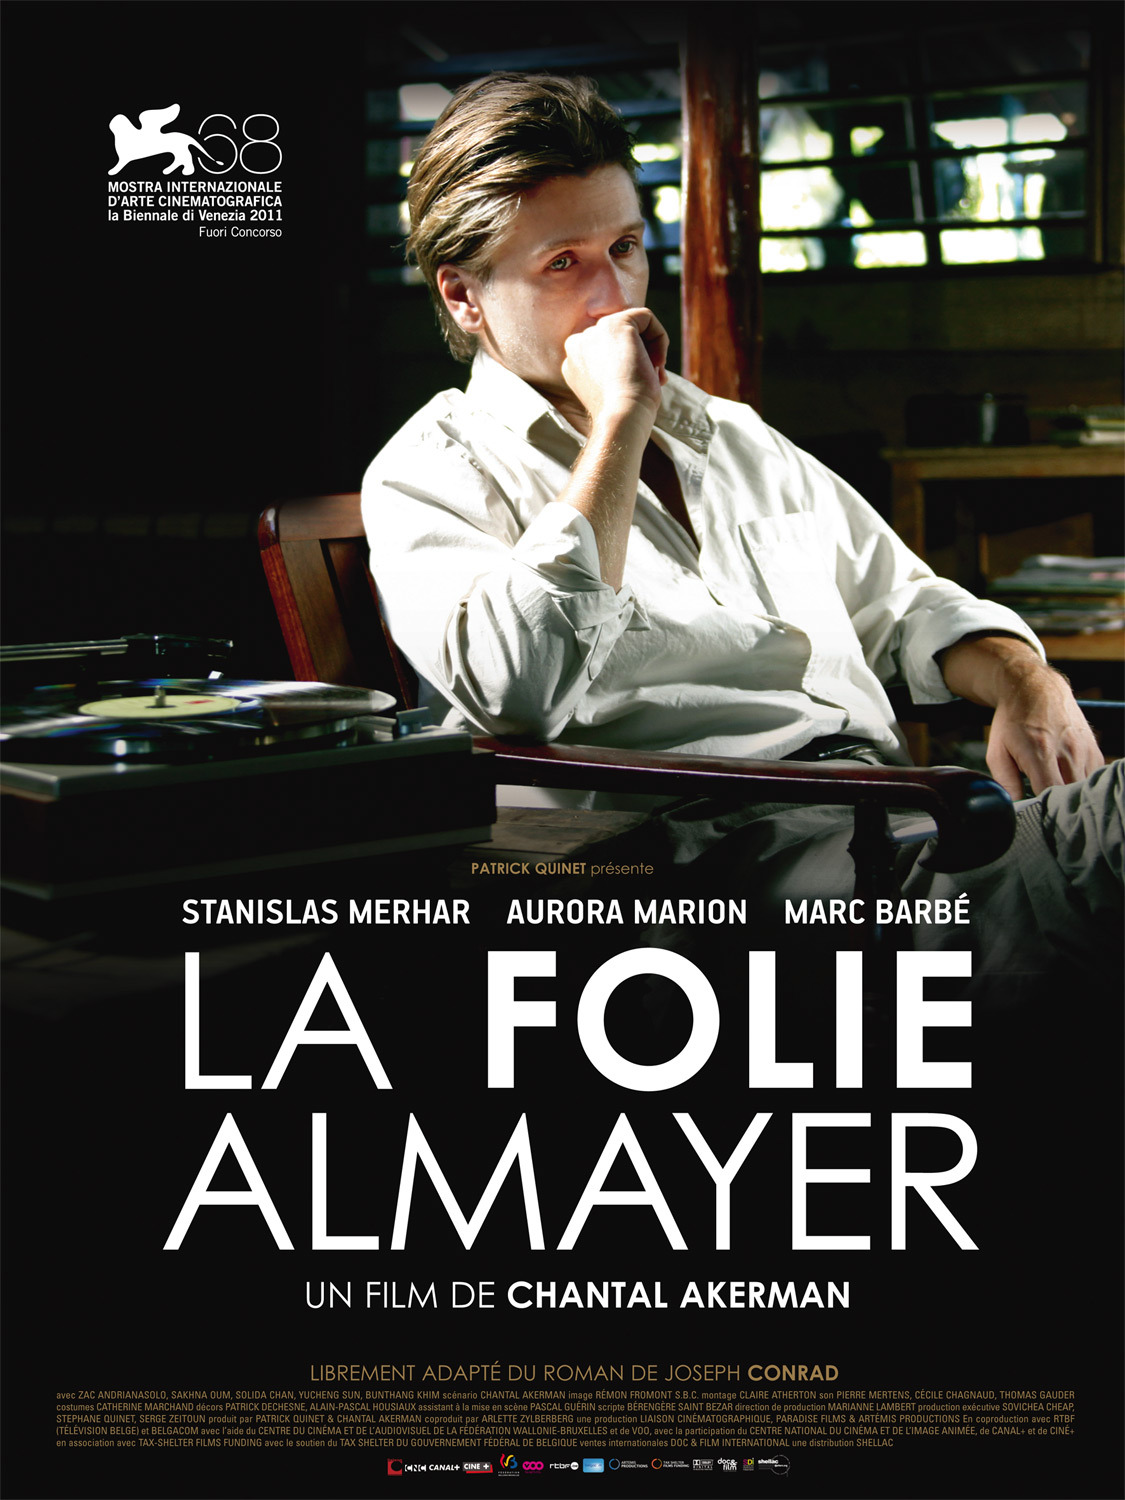 Almayer's Folly directed by Chantal Akerman, starring Stanislas Merhar, Aurora Marion and Marc Barbé. That's got to be the tune from Melancholia right